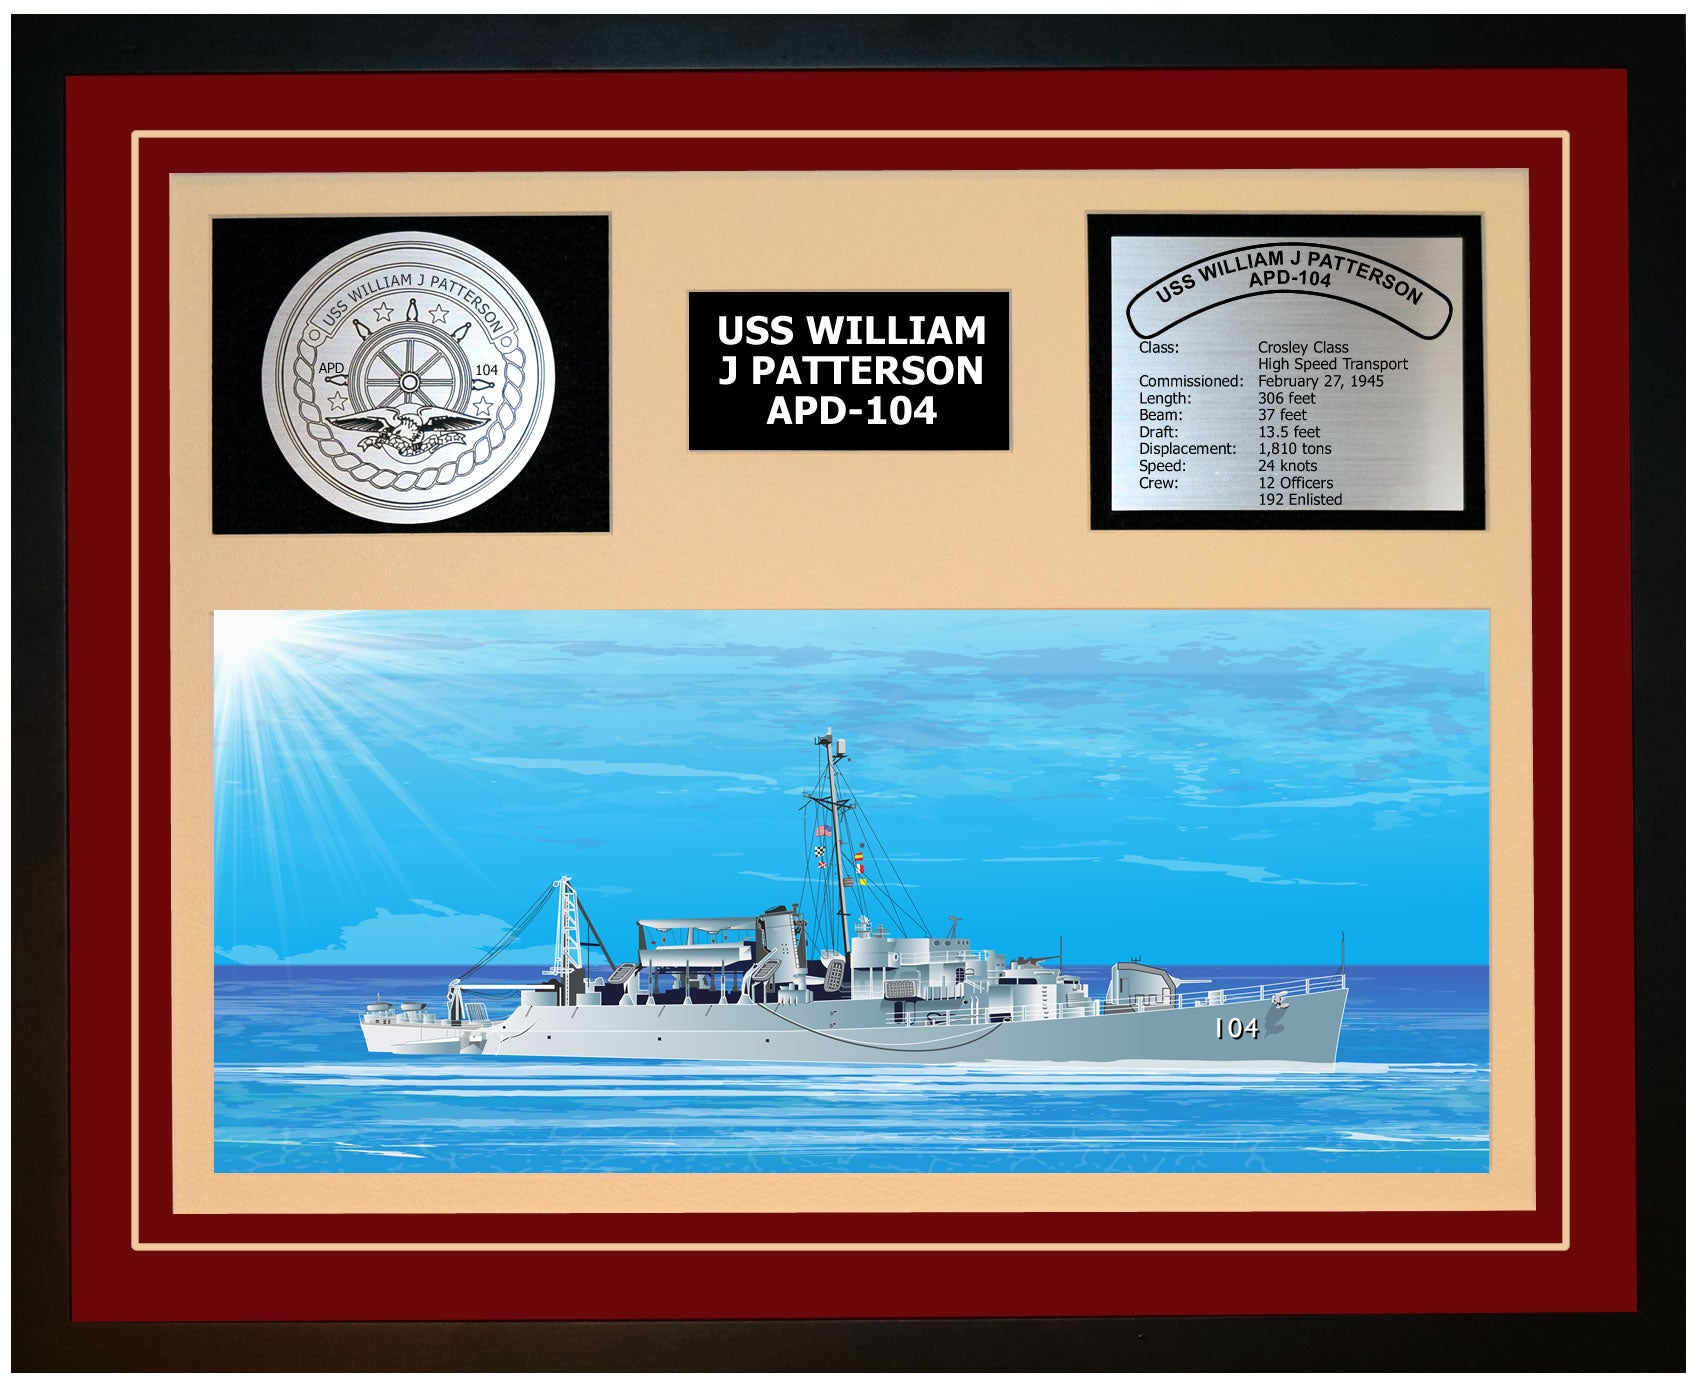 USS WILLIAM J PATTERSON APD-104 Framed Navy Ship Display Burgundy